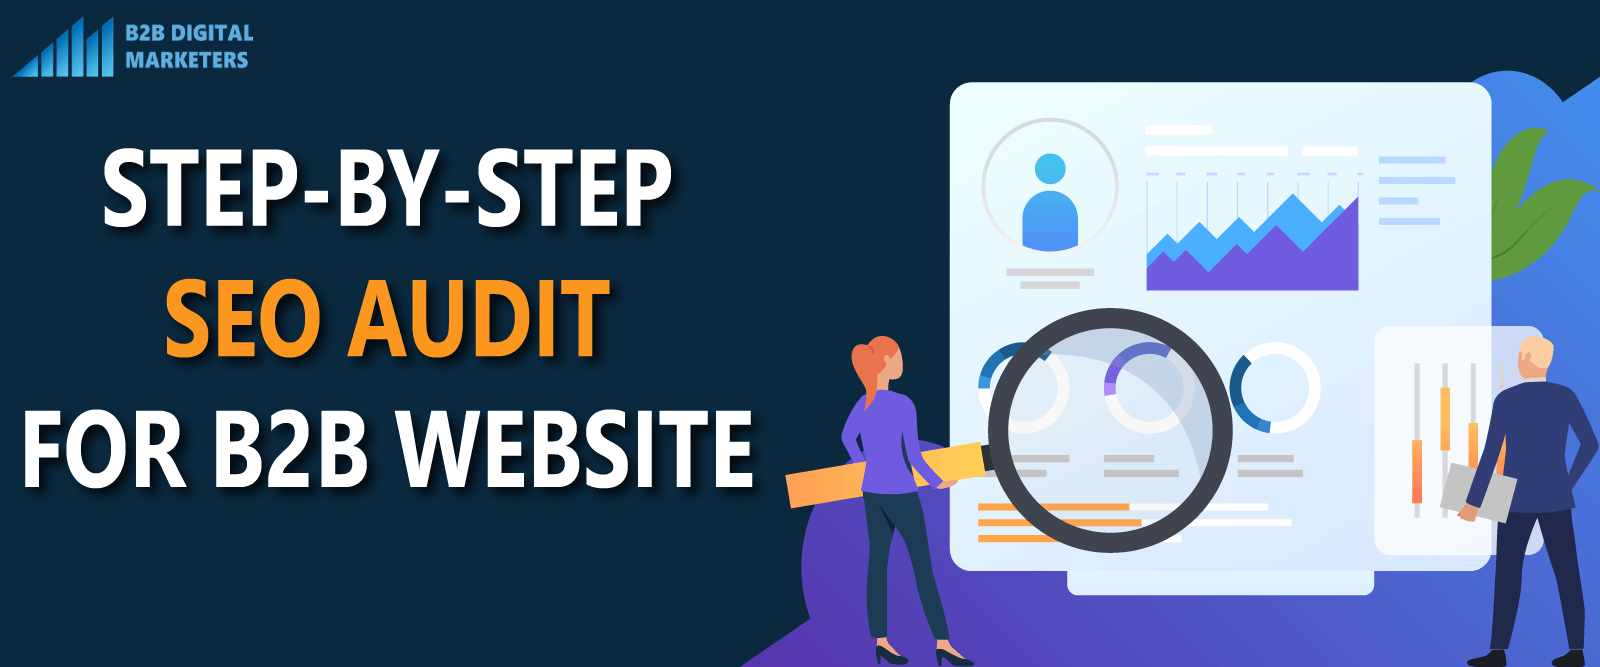 step-by-step seo audit guide for b2b websites